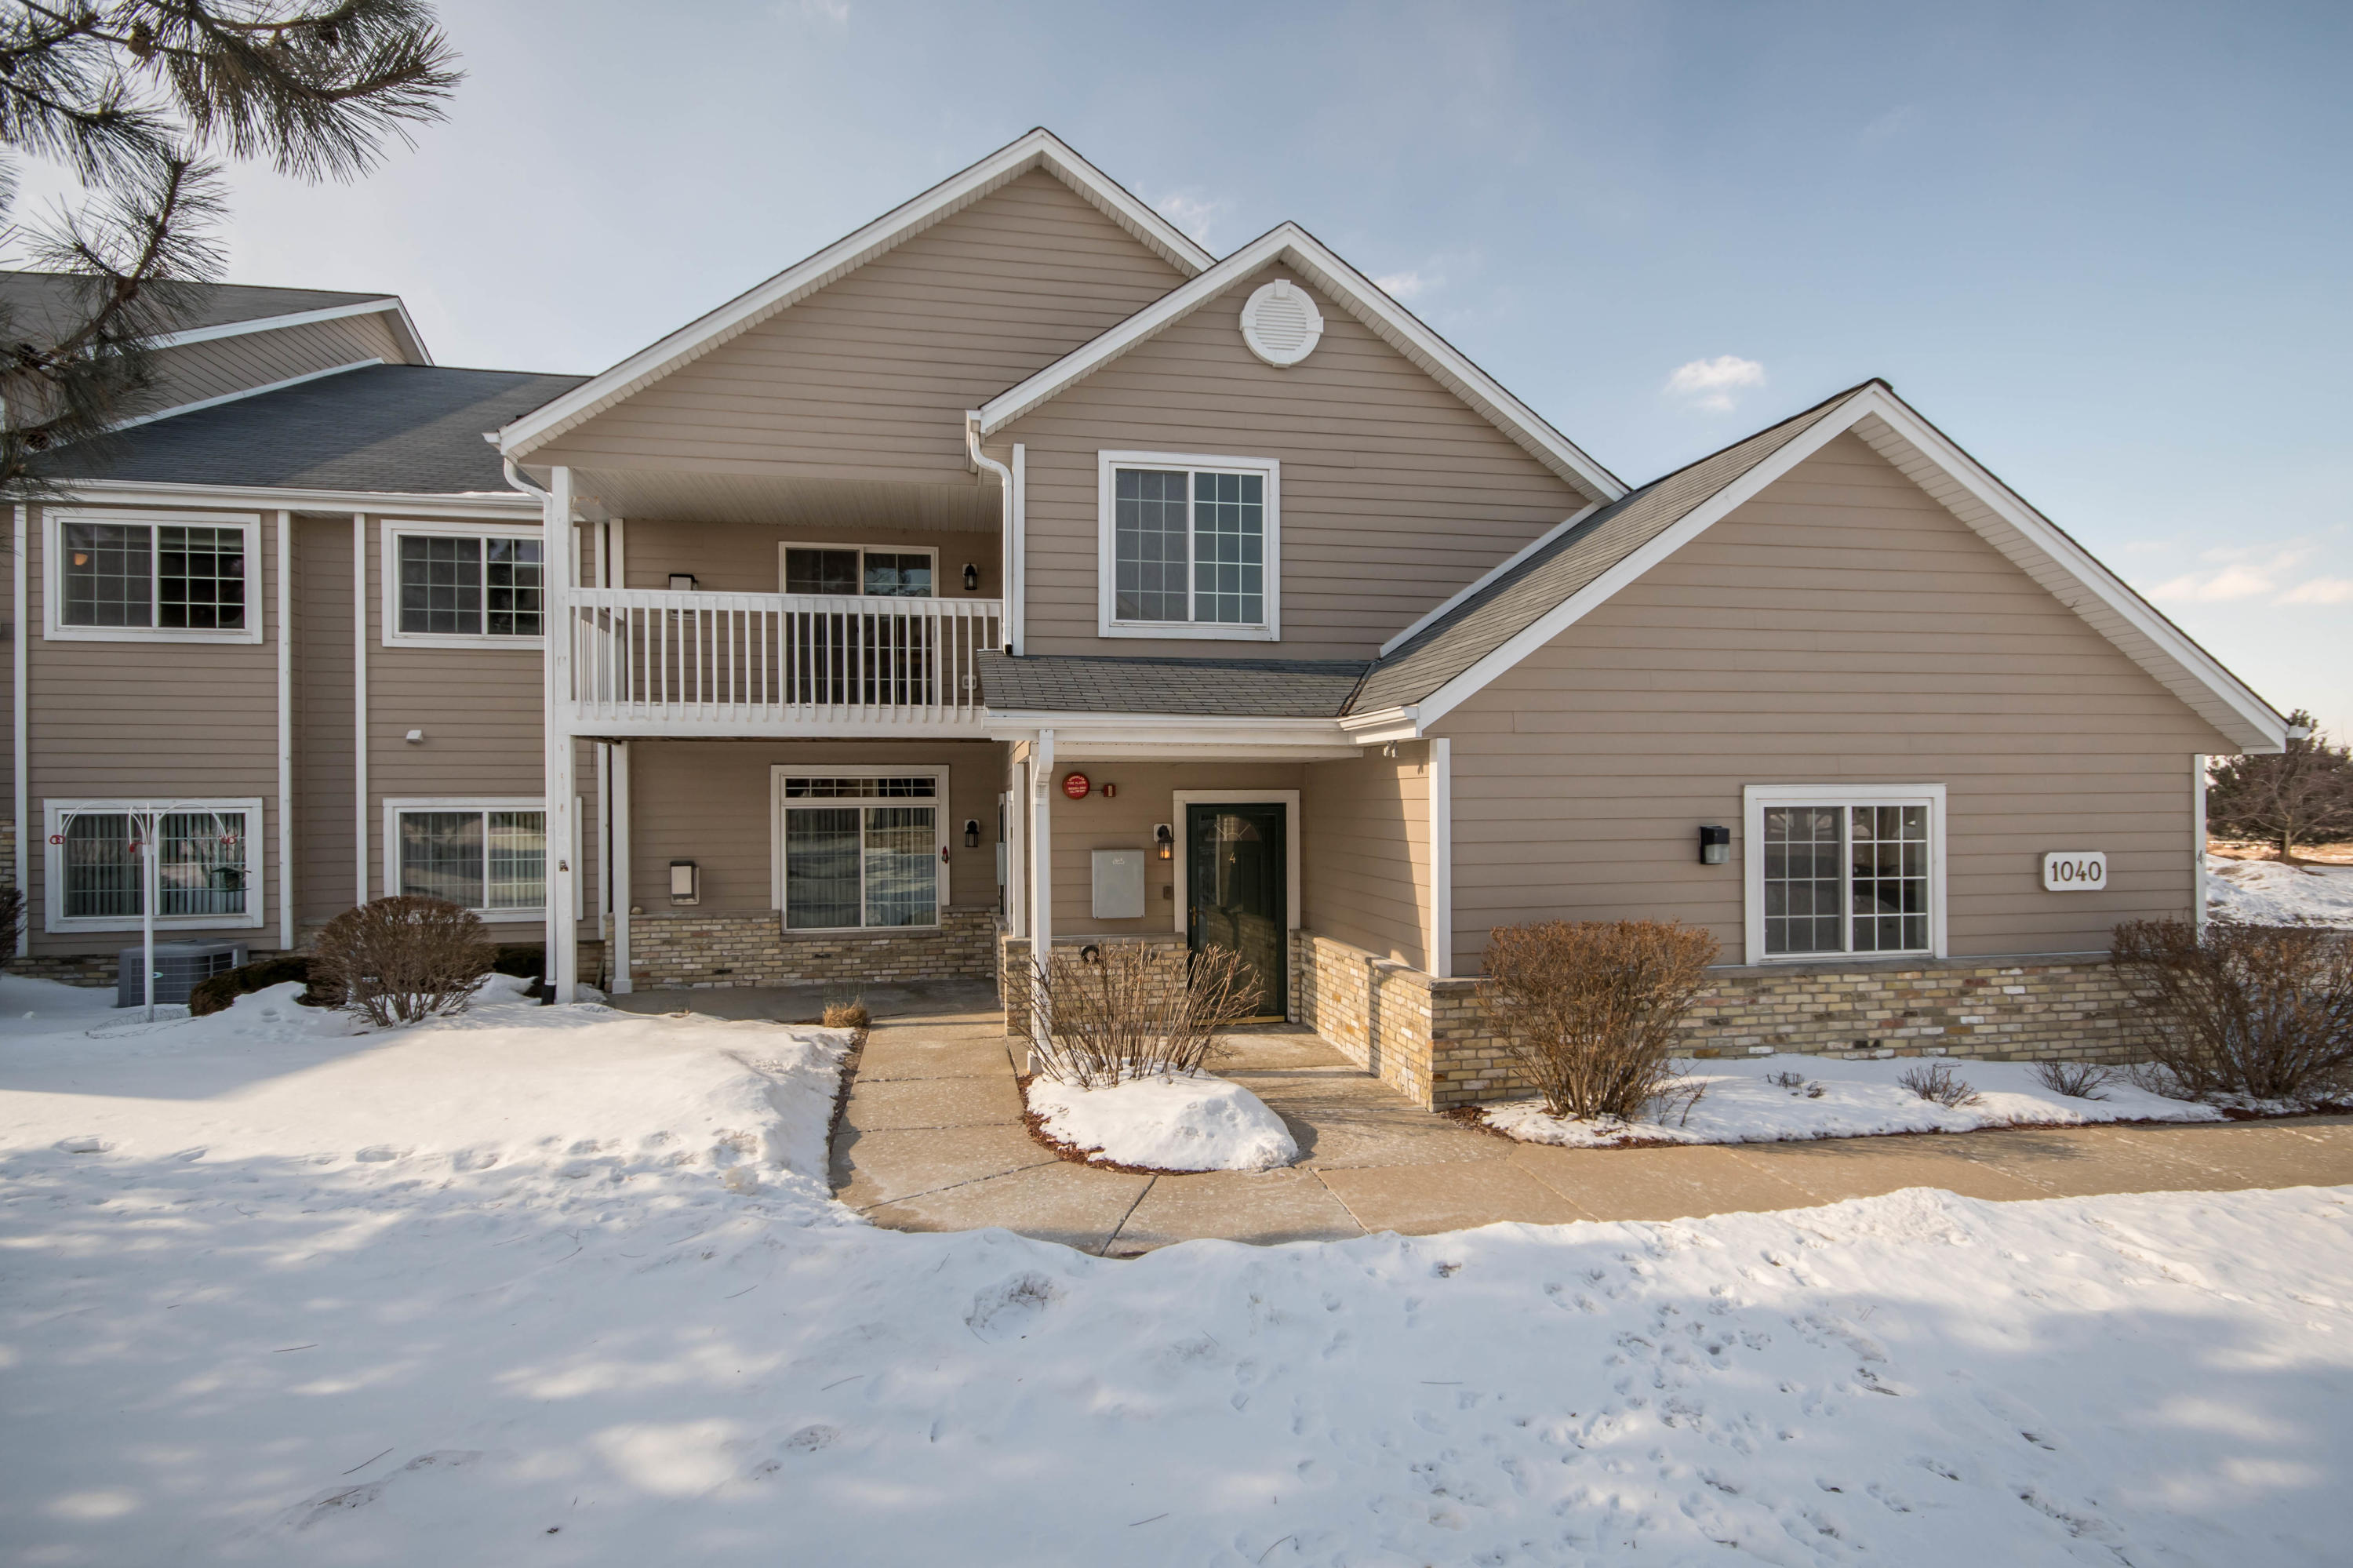 1040 River Place Blvd, Waukesha, Wisconsin 53189, 3 Bedrooms Bedrooms, 5 Rooms Rooms,2 BathroomsBathrooms,Condominiums,For Sale,River Place Blvd,2,1624968